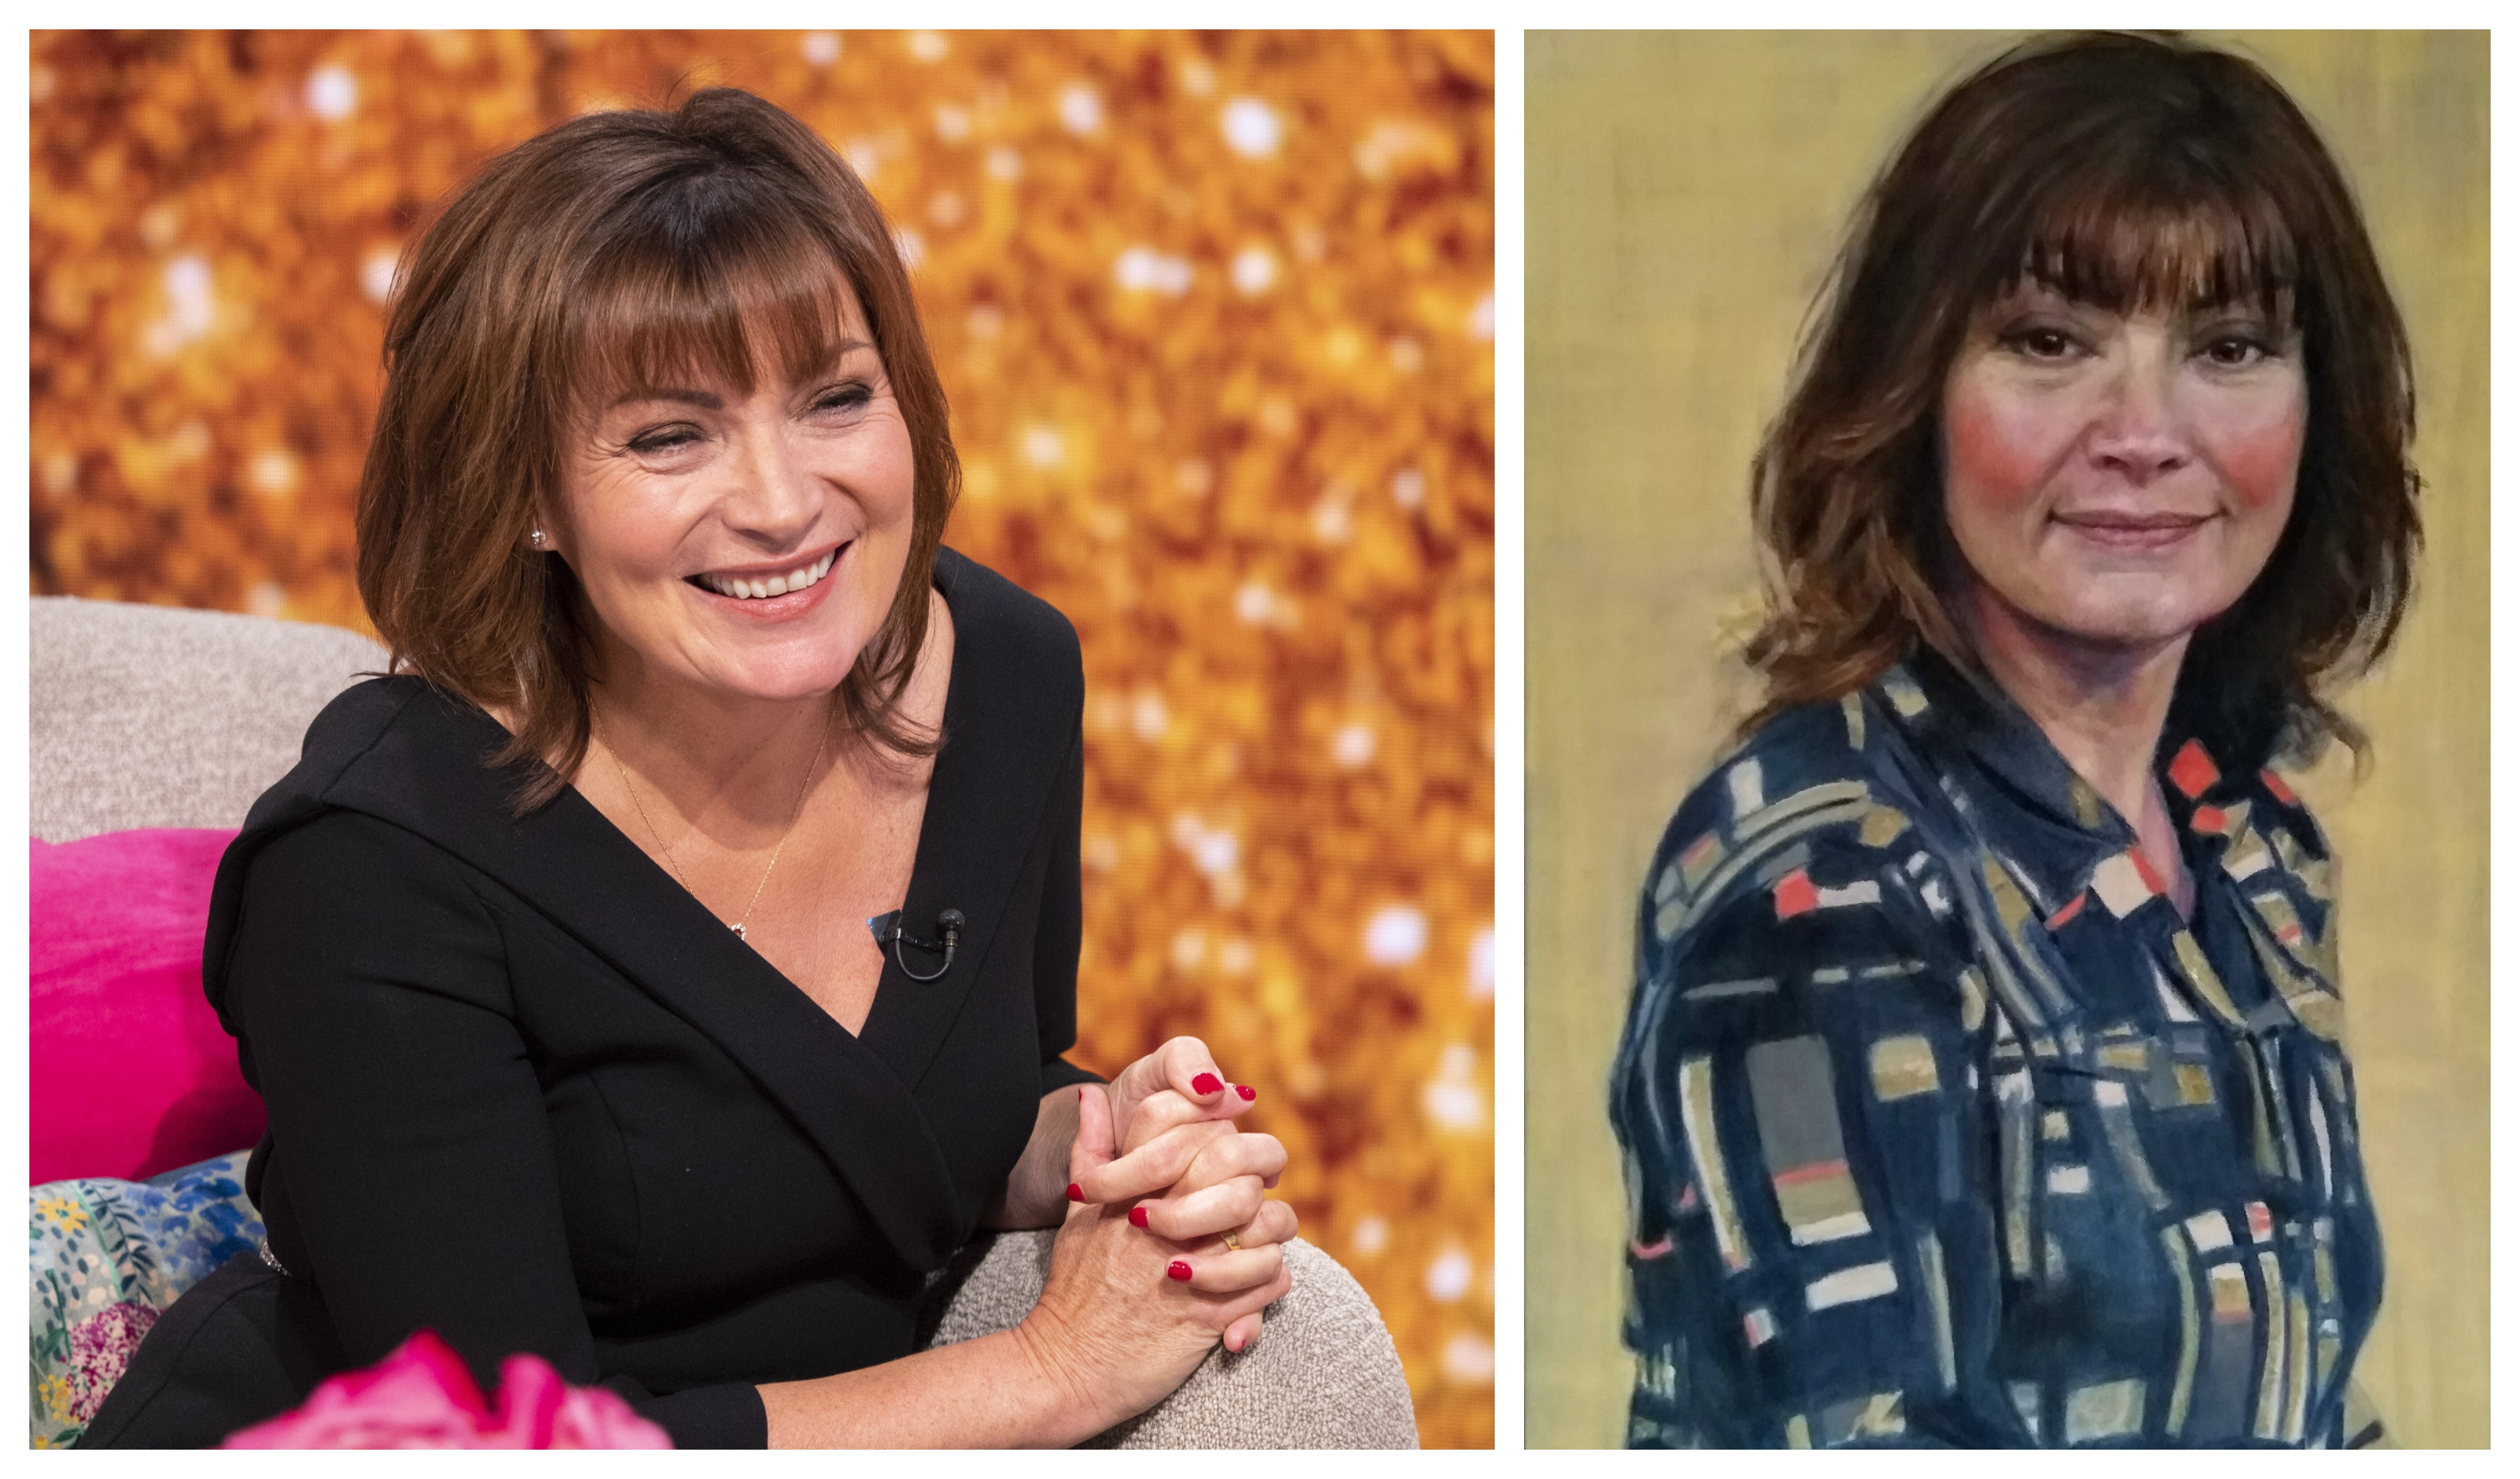 Lorraine's 60th is celebrated on the show and, right, the portrait.